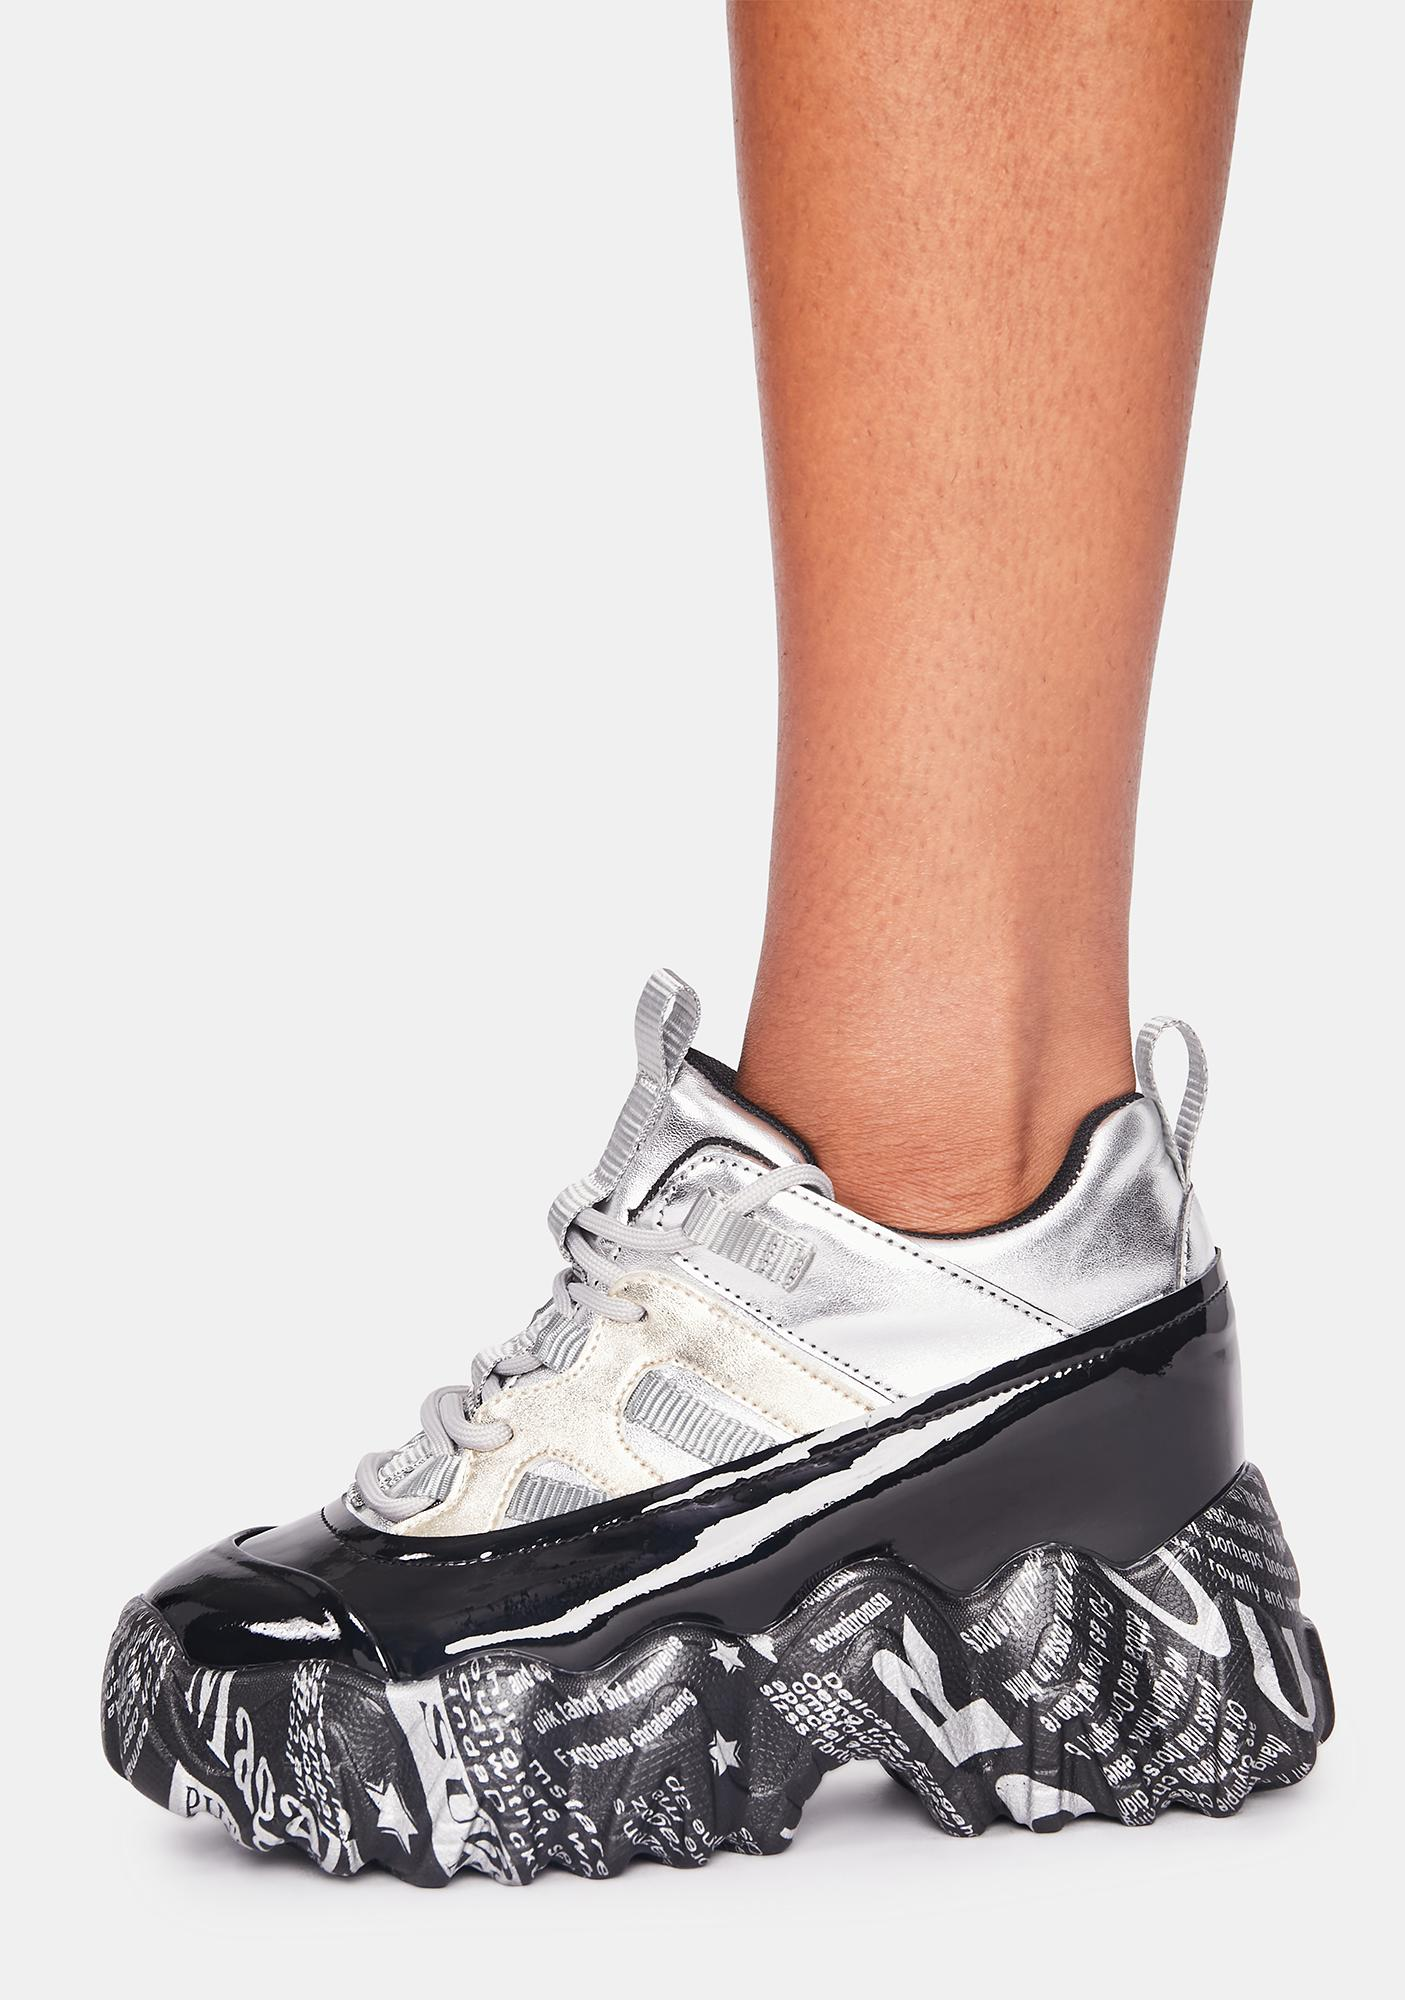 Anthony Wang Silver Blackberry Platform Sneakers